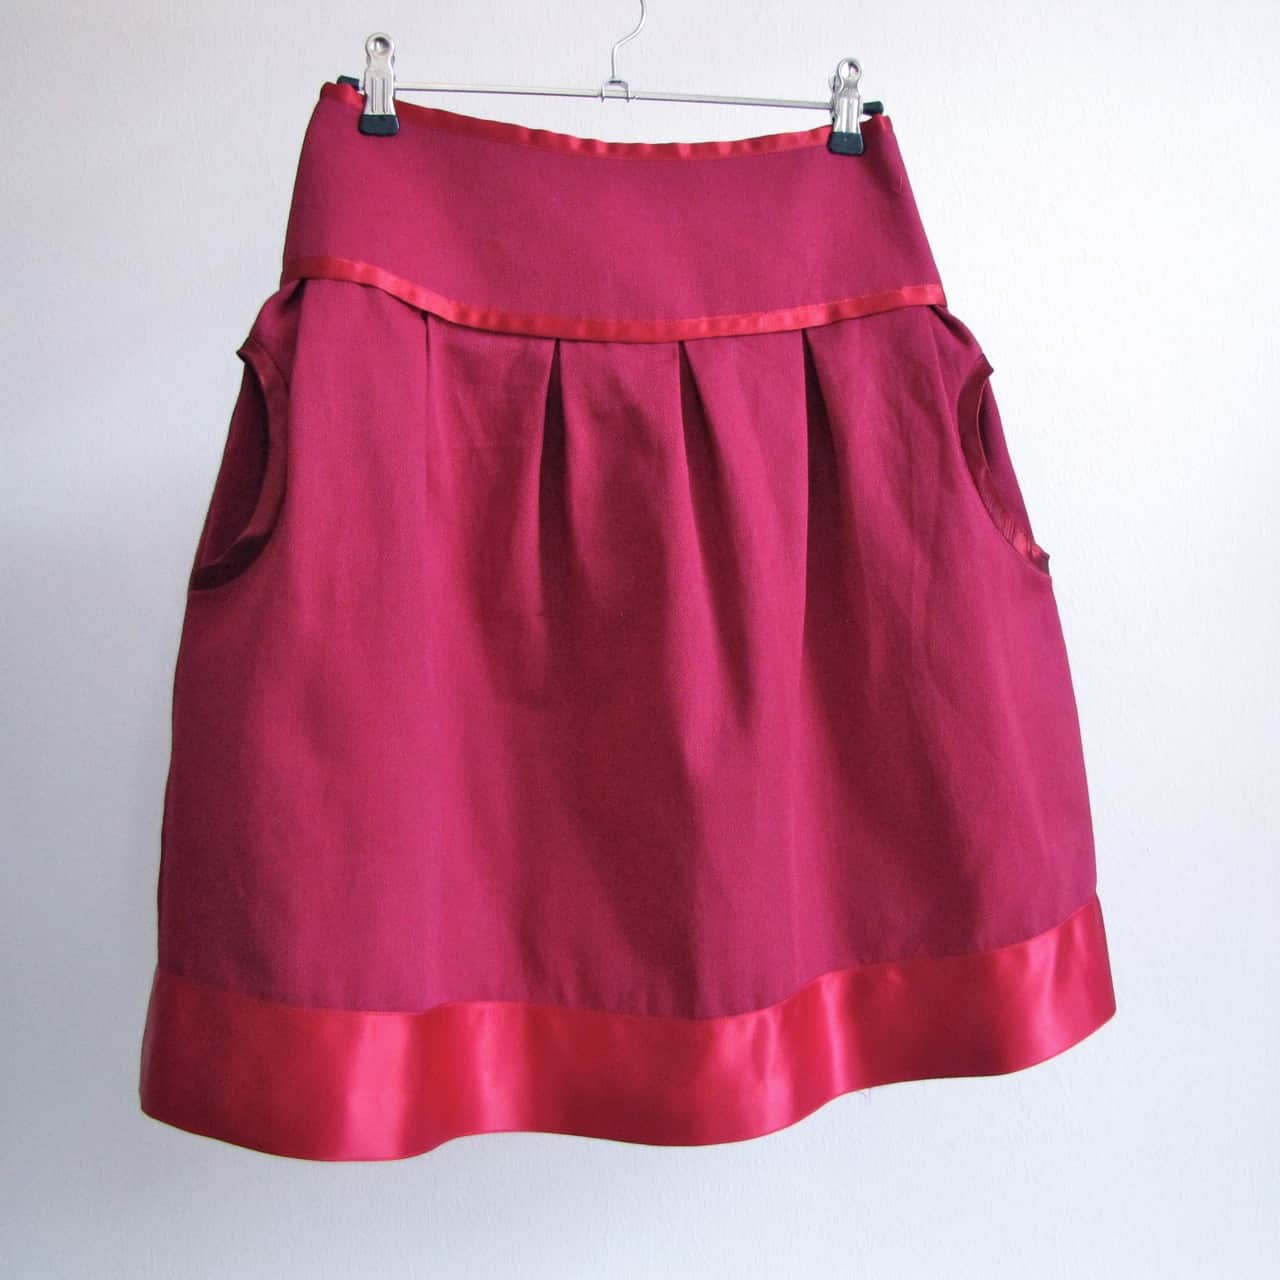 Circle skirt with pockets and a ribbon edging